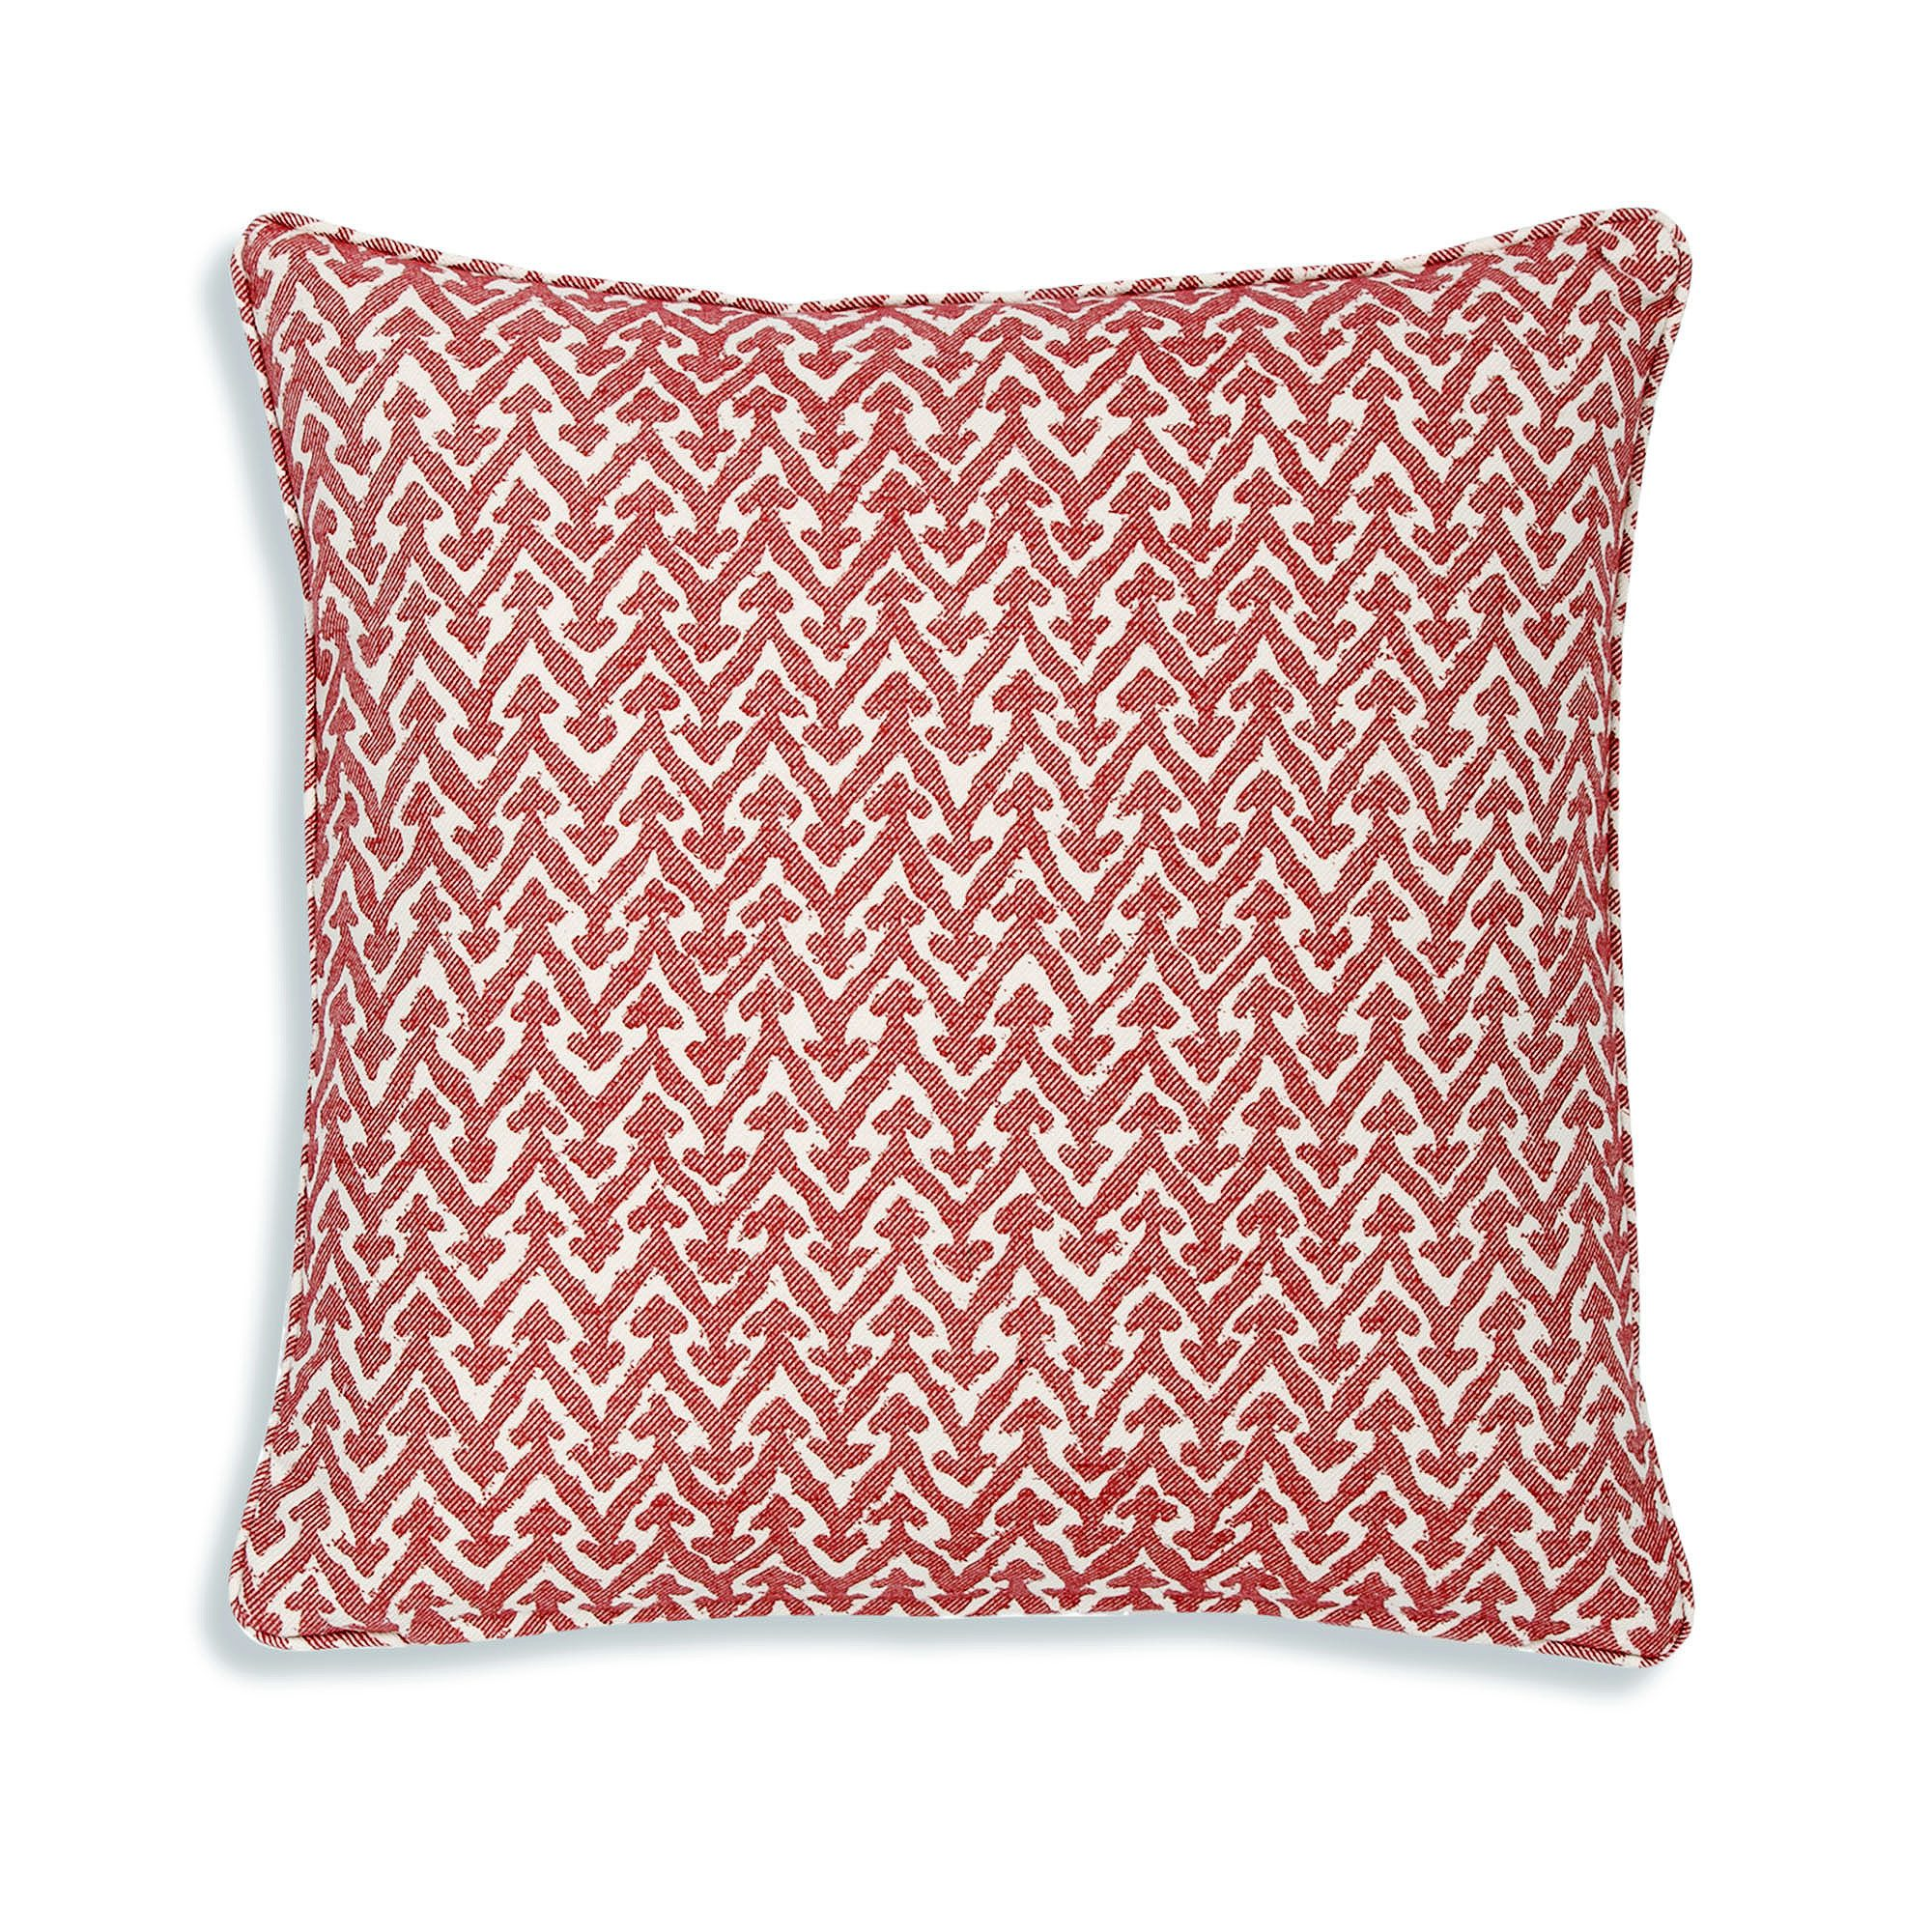 Small Square Cushion in Red Rabanna